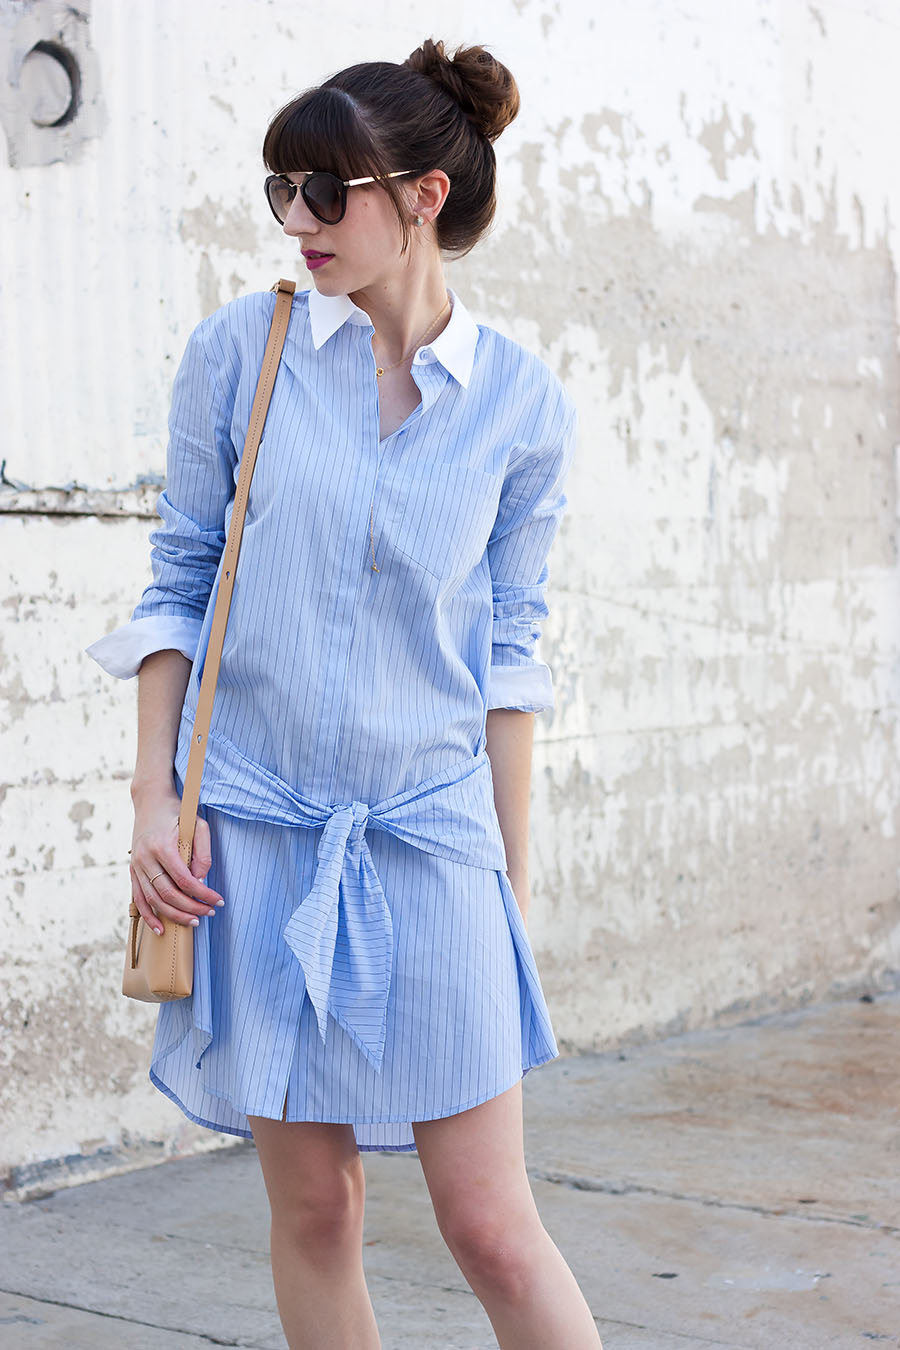 Shirtdress with Tied Waist, Striped Shirtdress, Ditto Prada Sunglasses